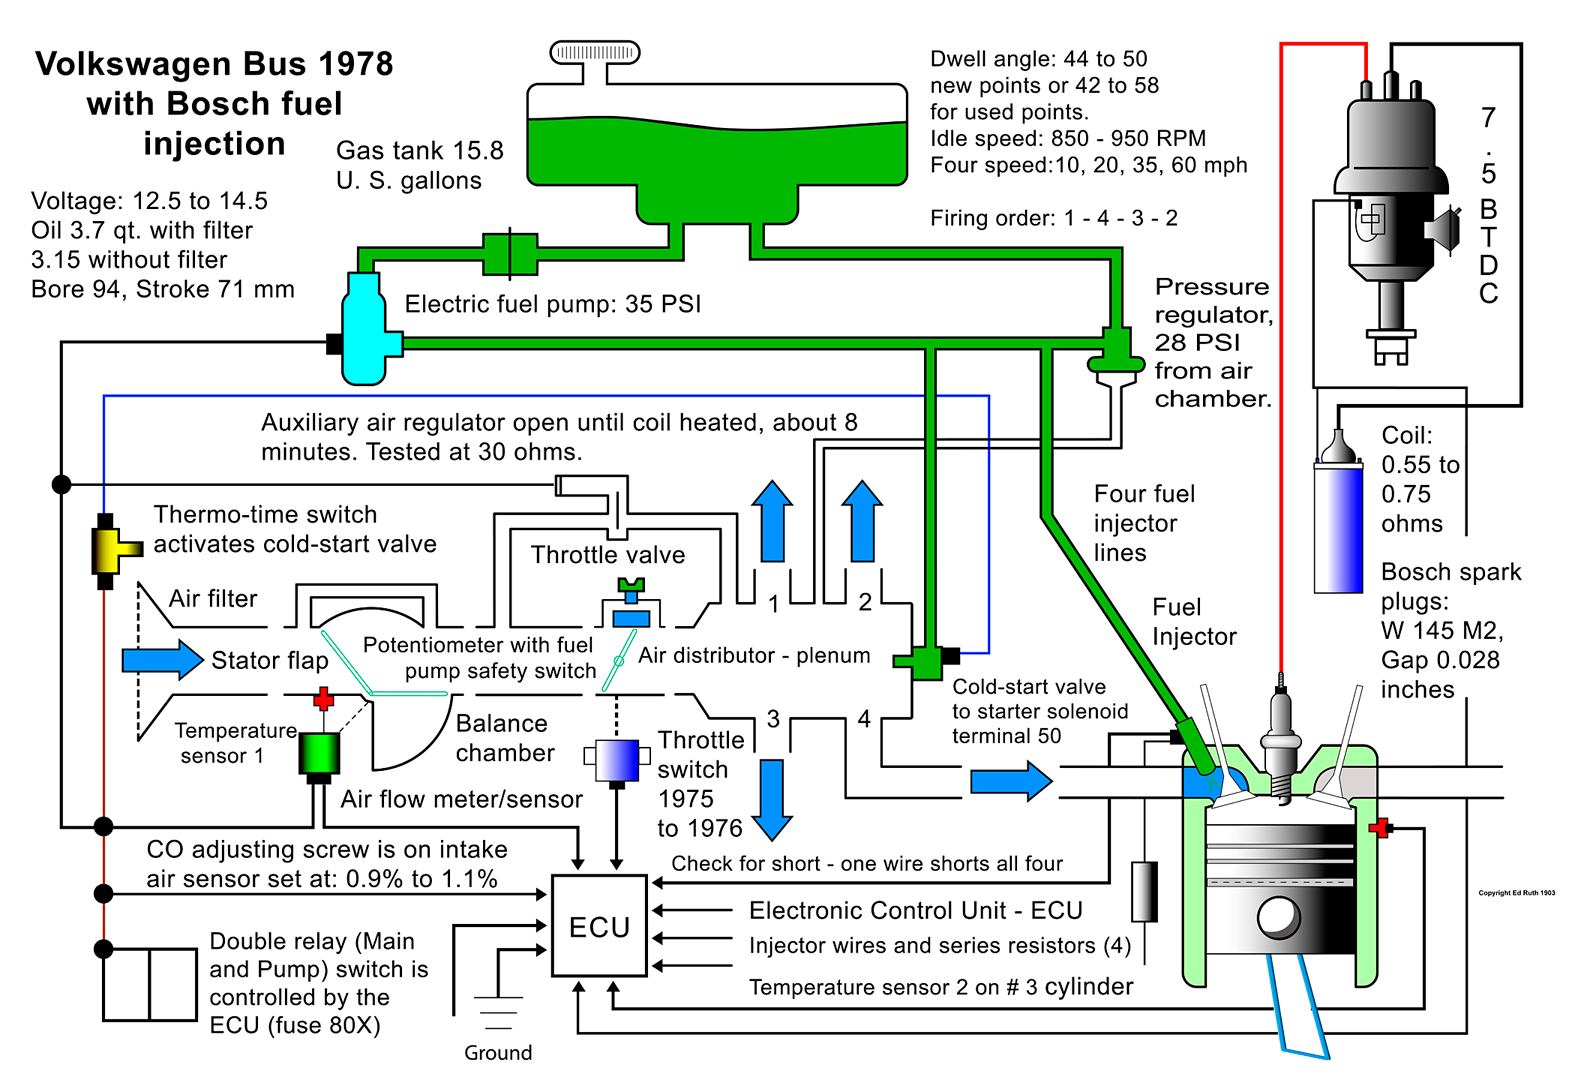 porsche 914 fuel injection diagram 1975 wiring diagram \u2022 triumph spitfire wiring-diagram thesamba com bay window bus view topic fuel injection rh thesamba com 1974 porsche 914 fuel pump porsche 914 intake manifold